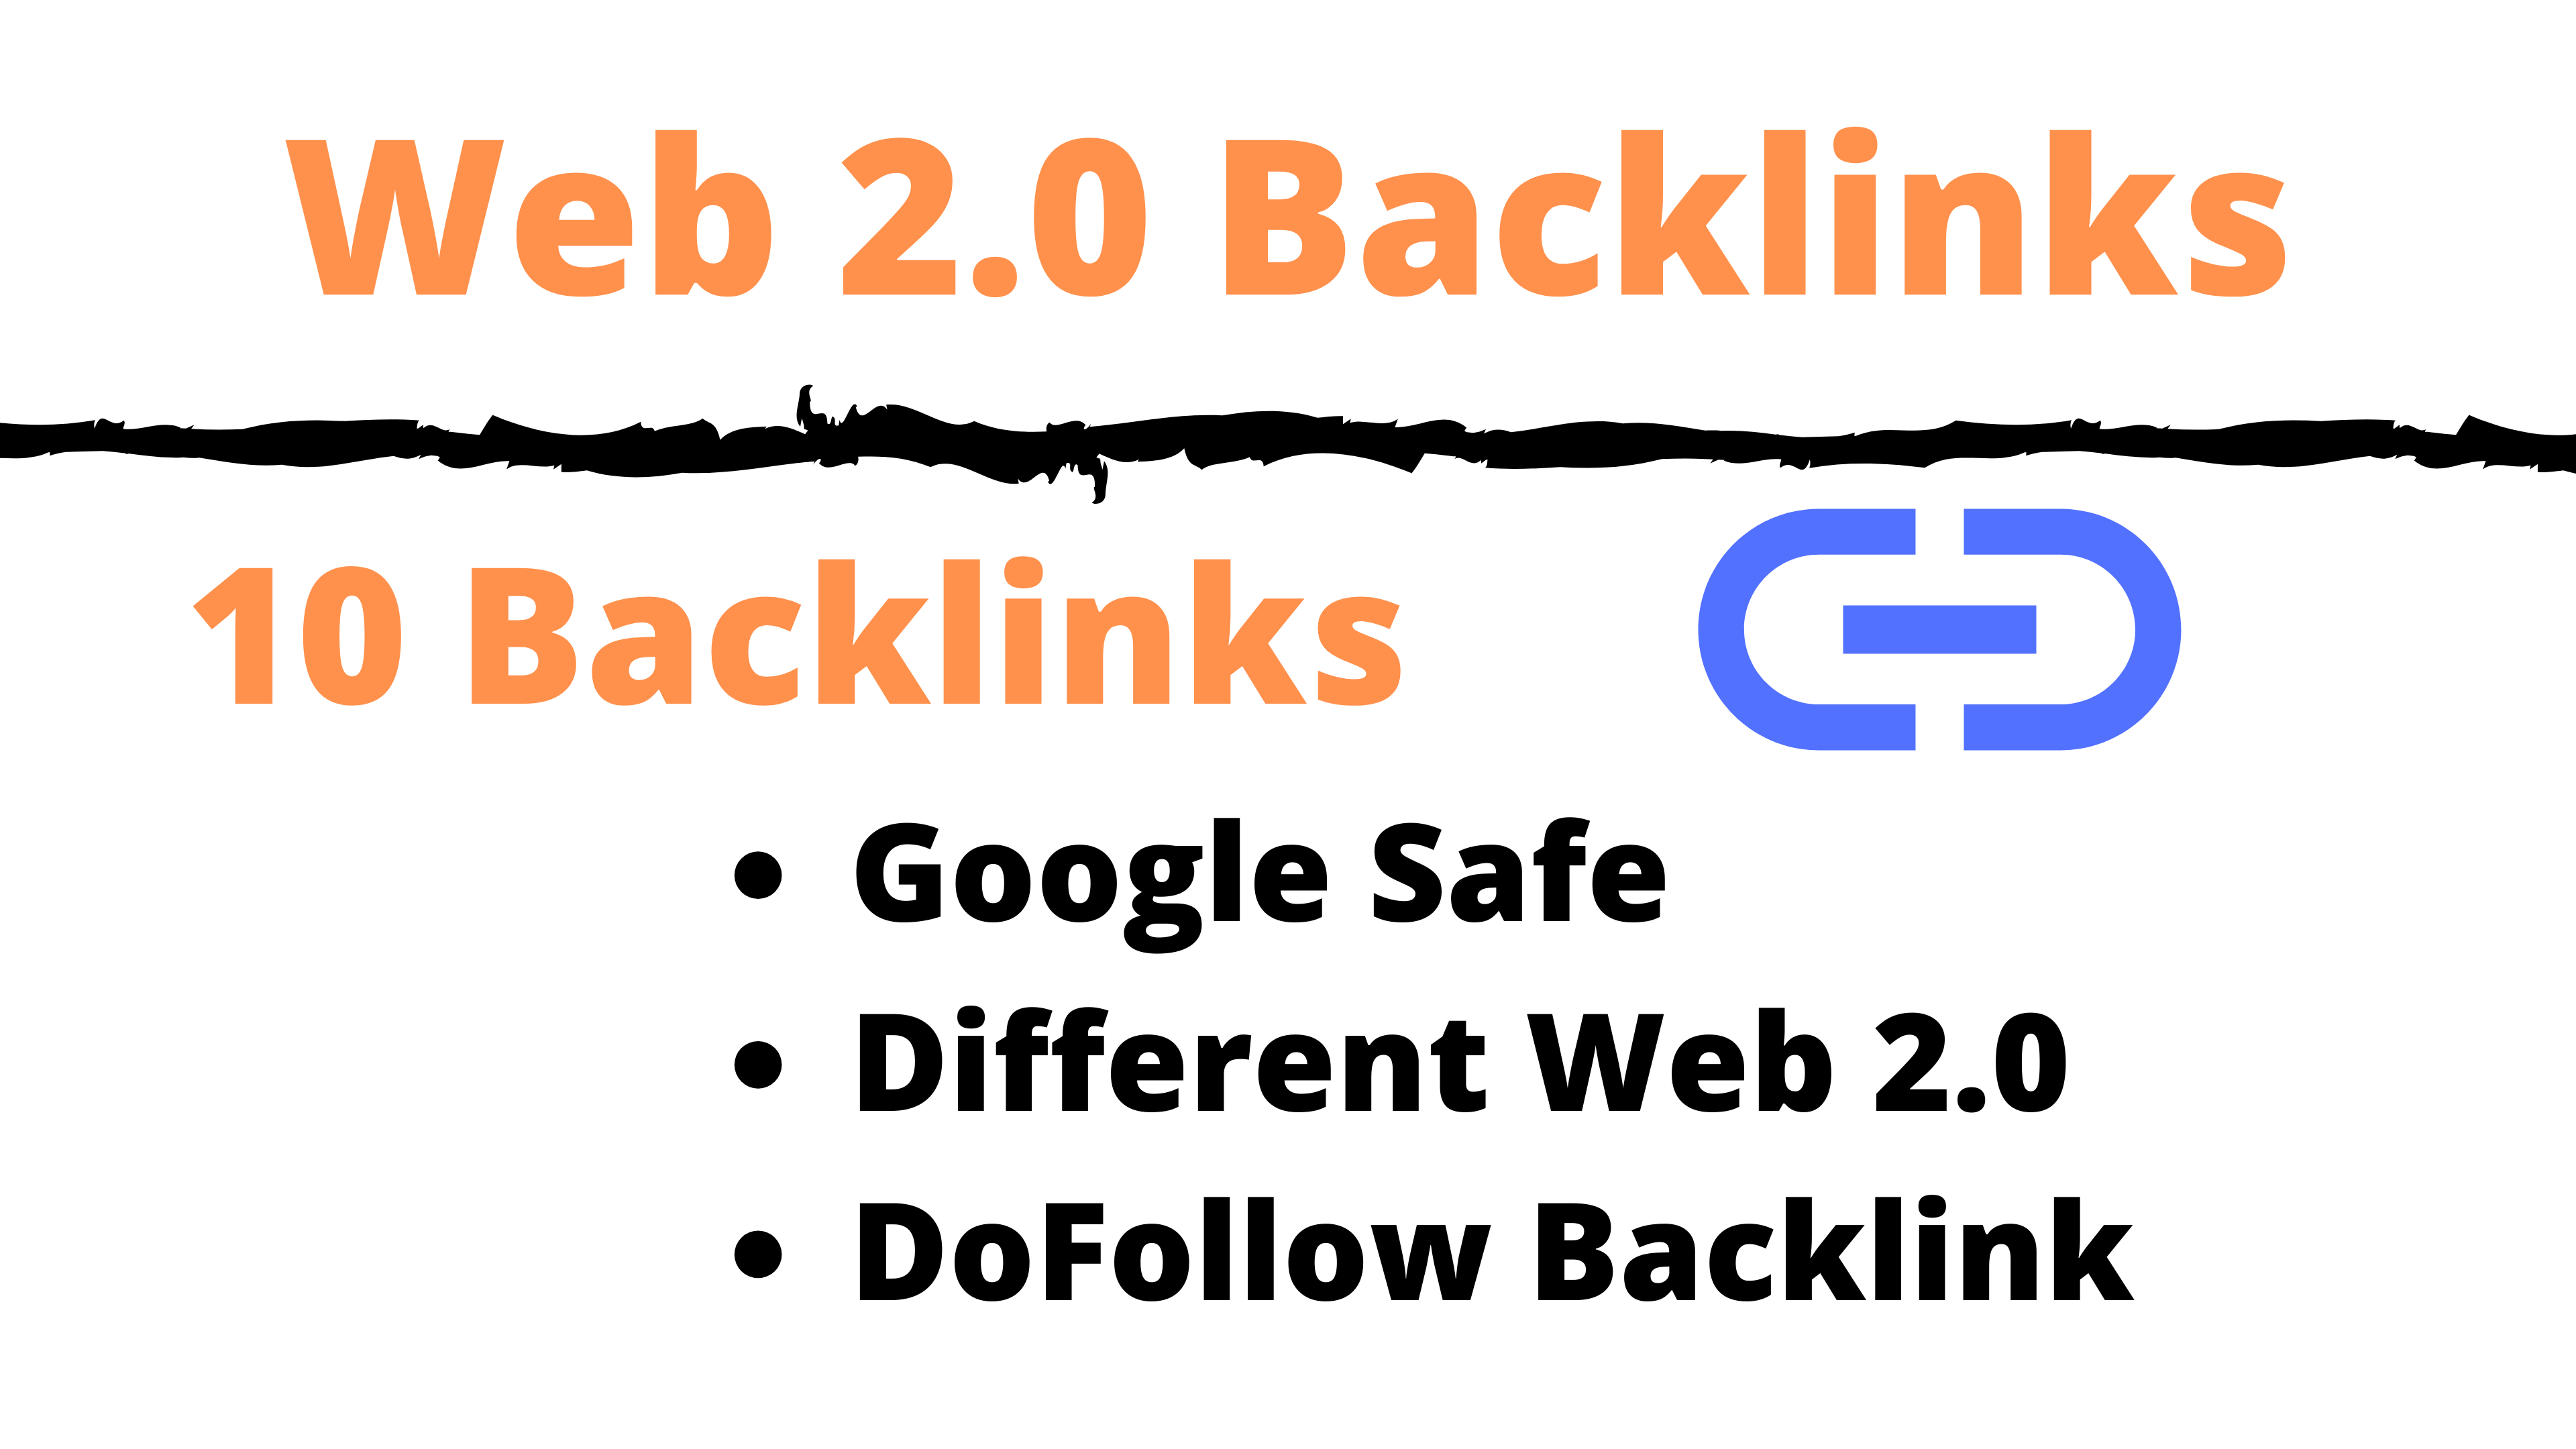 Web 2.0 Do Follow Backlinks From Different Sites